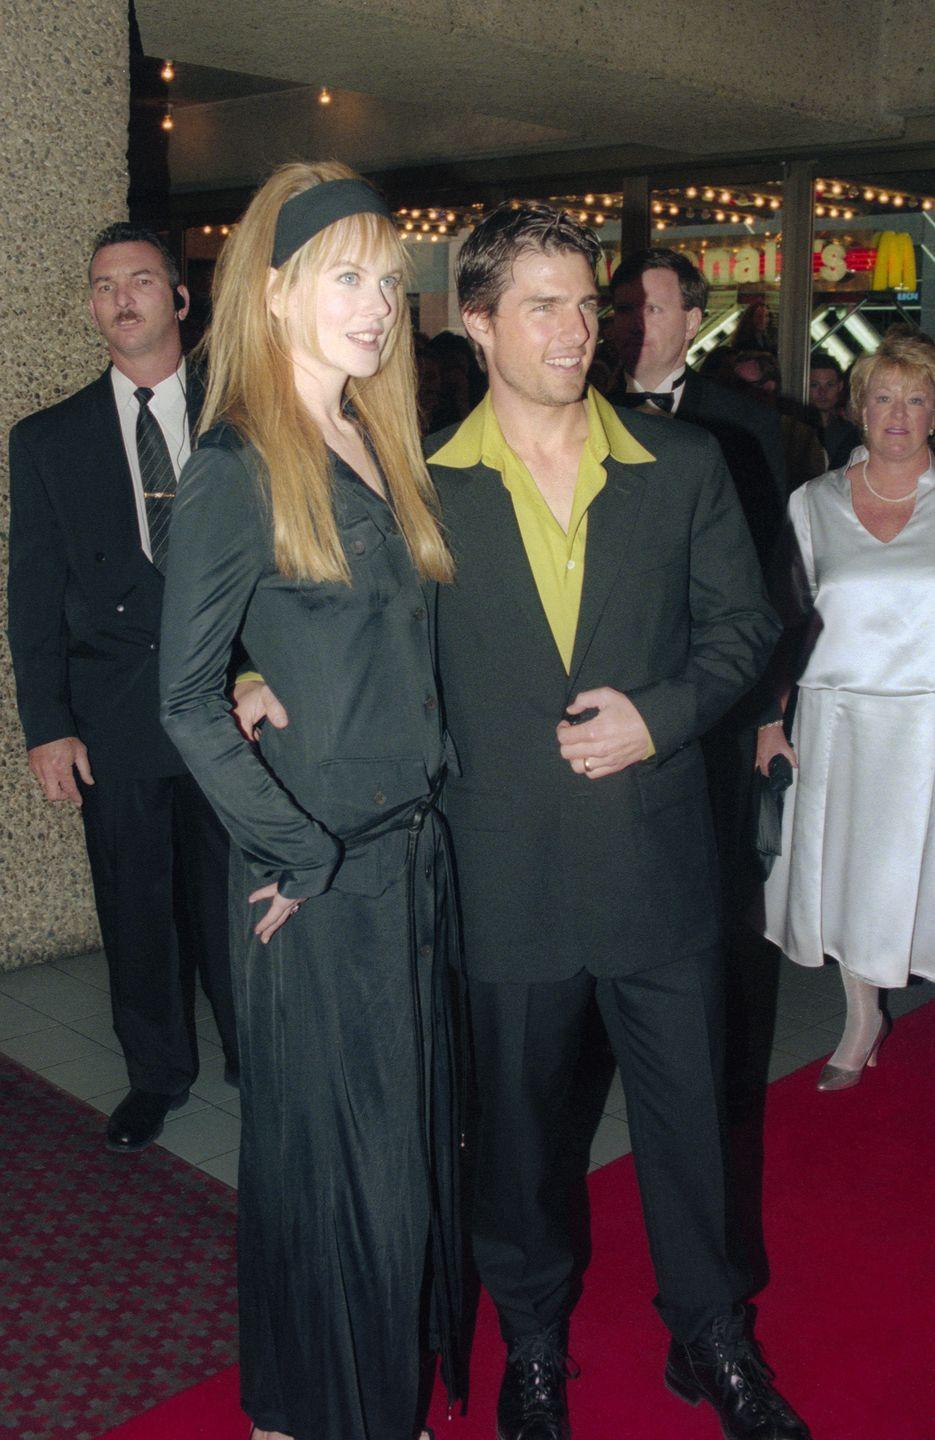 <p>And now for the <em>Big Little Lies</em> segment of throwback '90s fashion, here is Nicole wearing a jersey headband to the premiere of <em>To Die For</em>. And also, Tom Cruise is casually wearing a slime-green-colored button-down. </p>